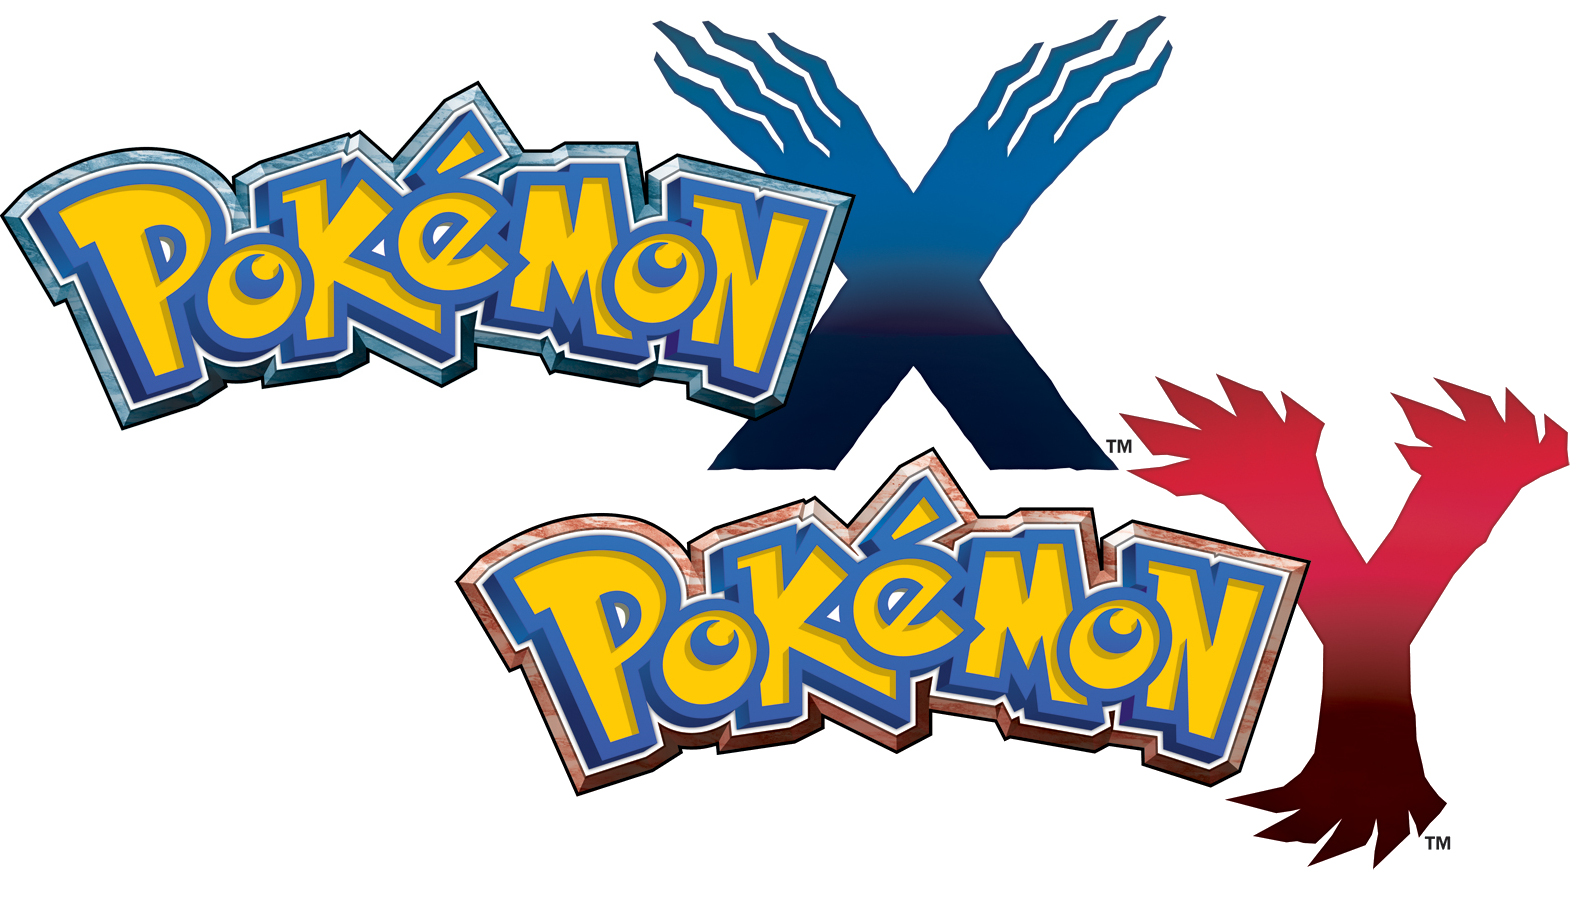 Pokemon-X-and-Y-Sells-4-Million-Units-in-Just-48-Hours-391760-2